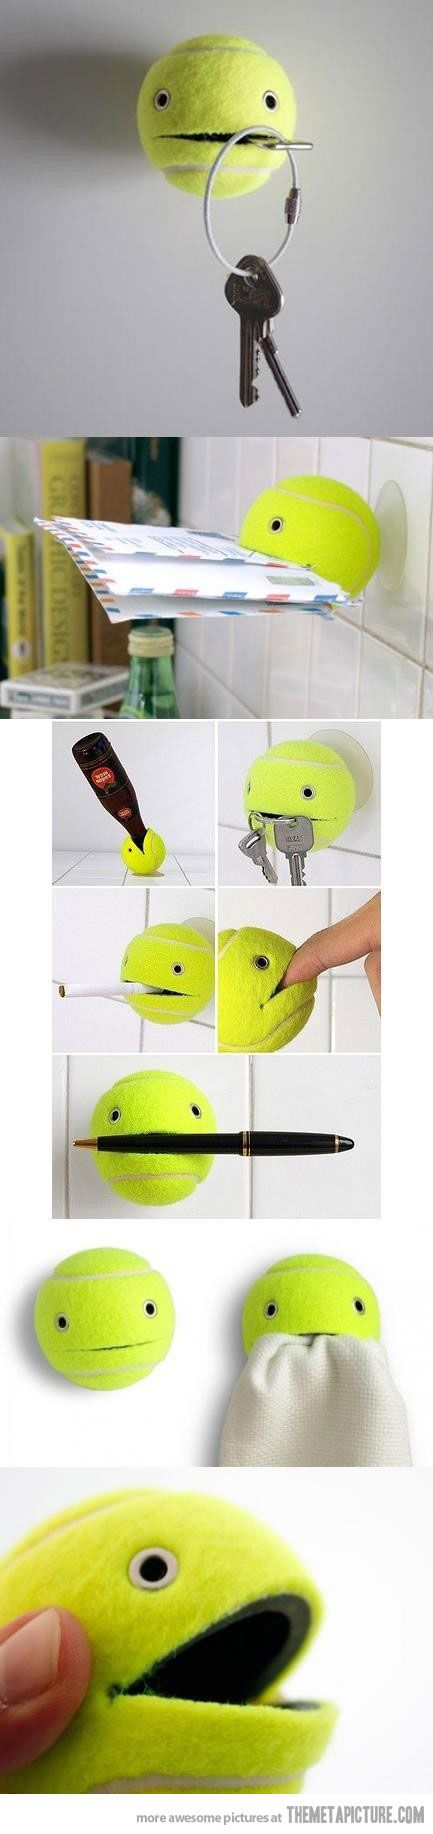 "Useless crafting idea #7892: ""Useful"" tennis ball. Can you hold my keys? This towel? Hold my beer, but don't drink it. Heh heh, pull my finger."